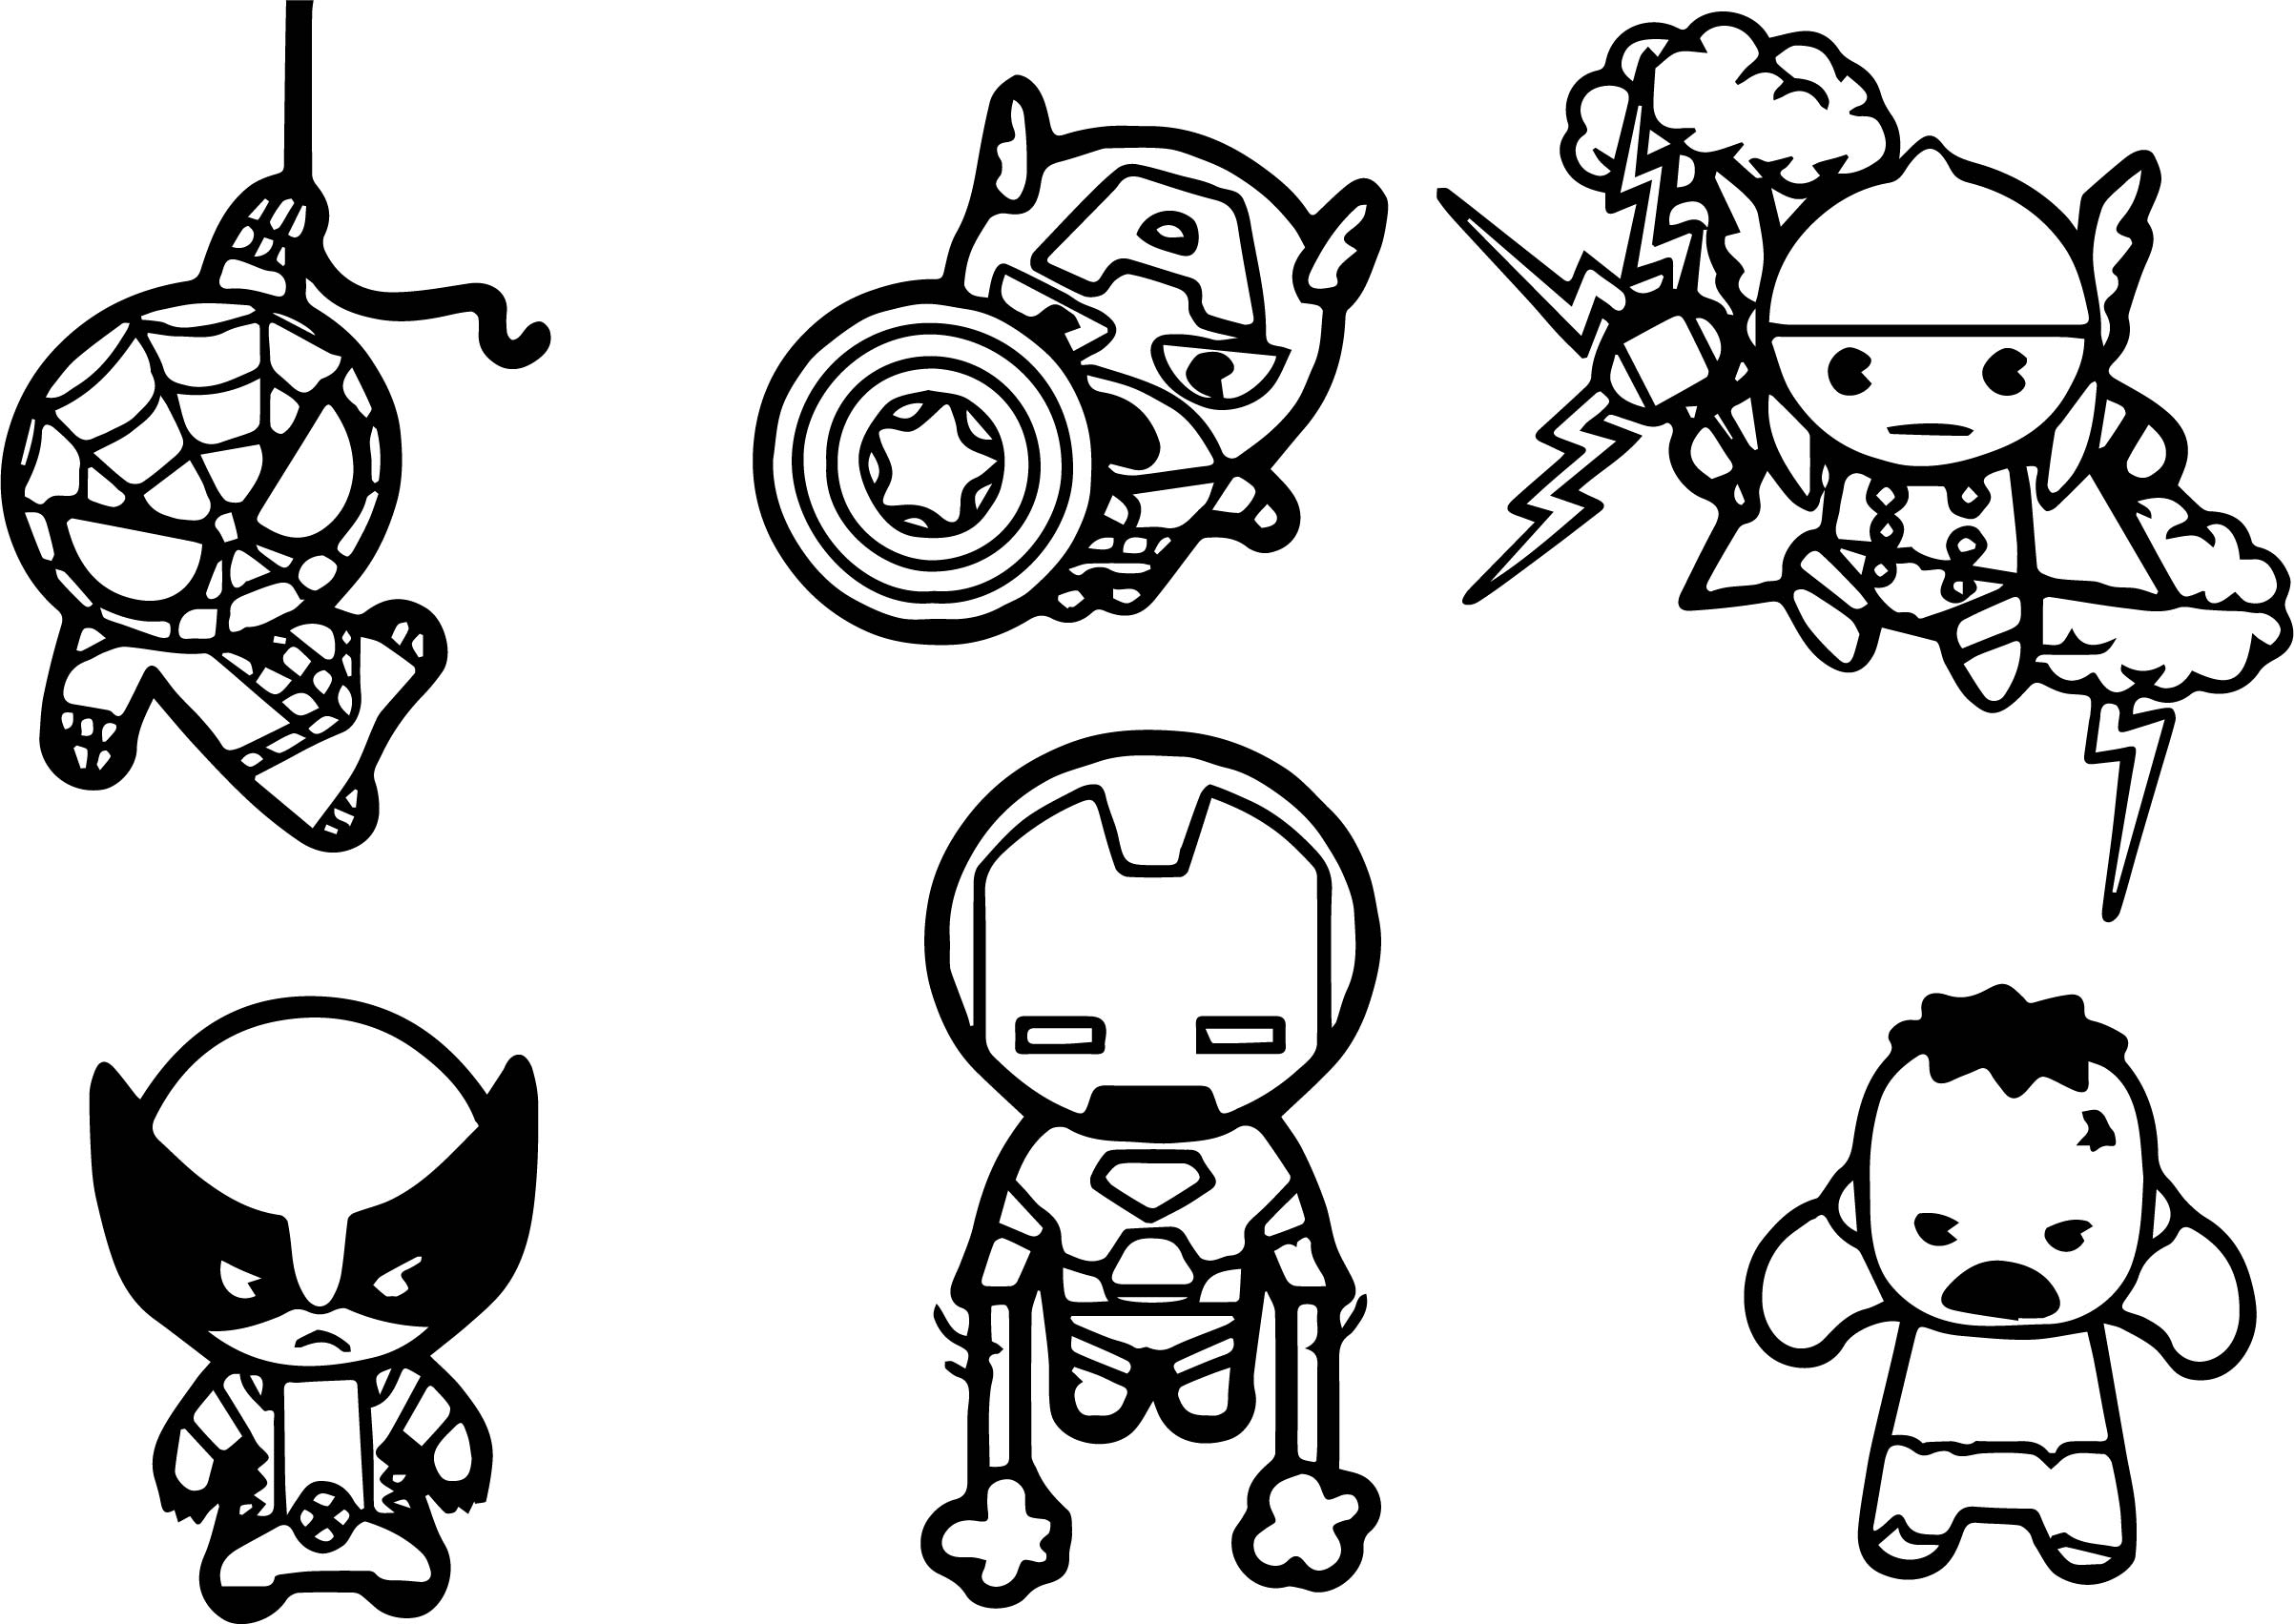 chibi avengers coloring pages how to draw raccoon chibi avengers drawings avengers pages avengers chibi coloring